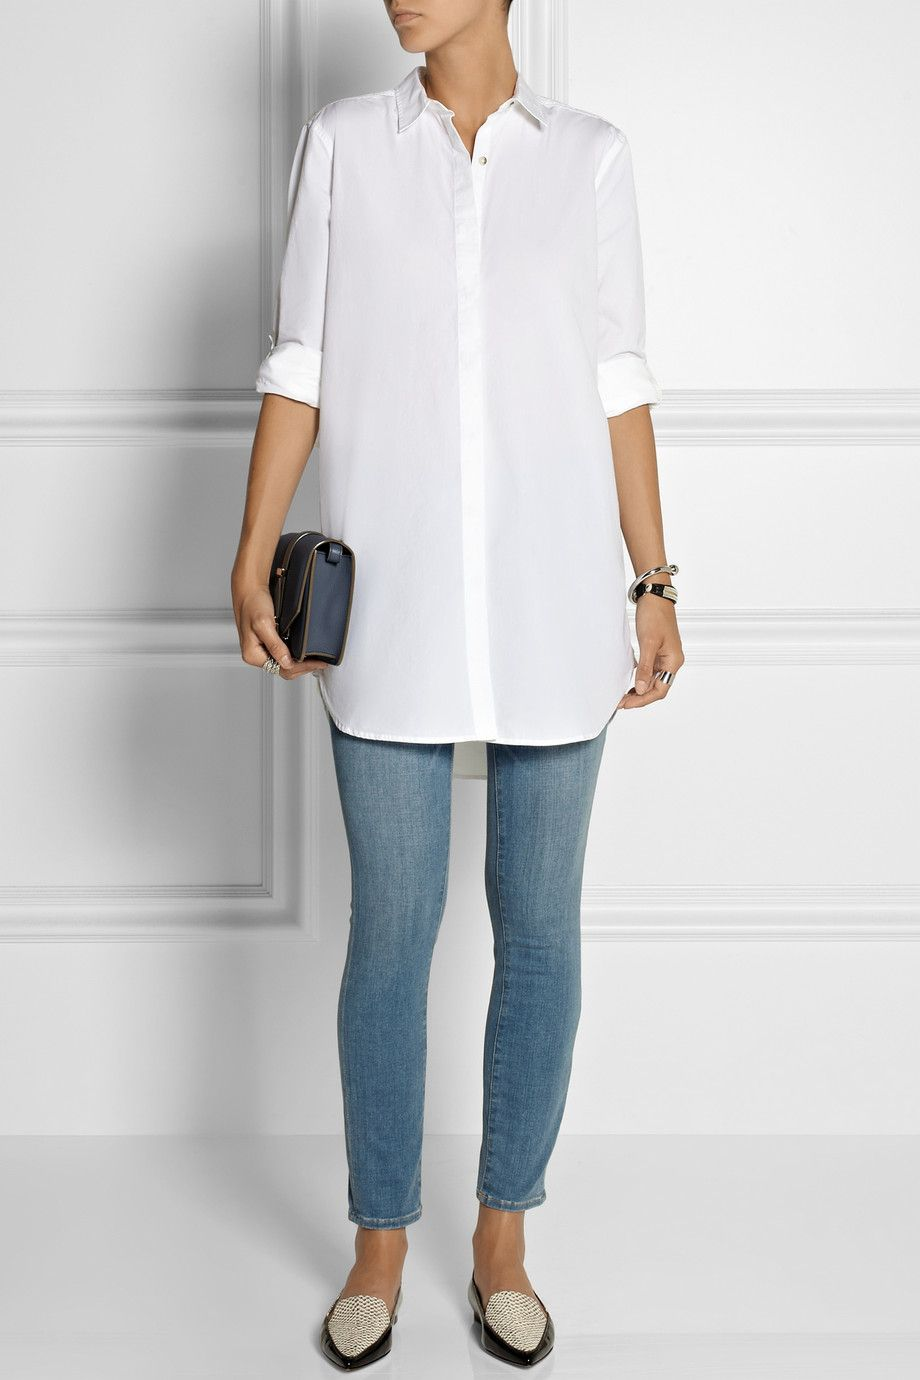 Oversized cotton shirt Mih Jeans Cheap And Nice Authentic Cheap Price FjDGbD